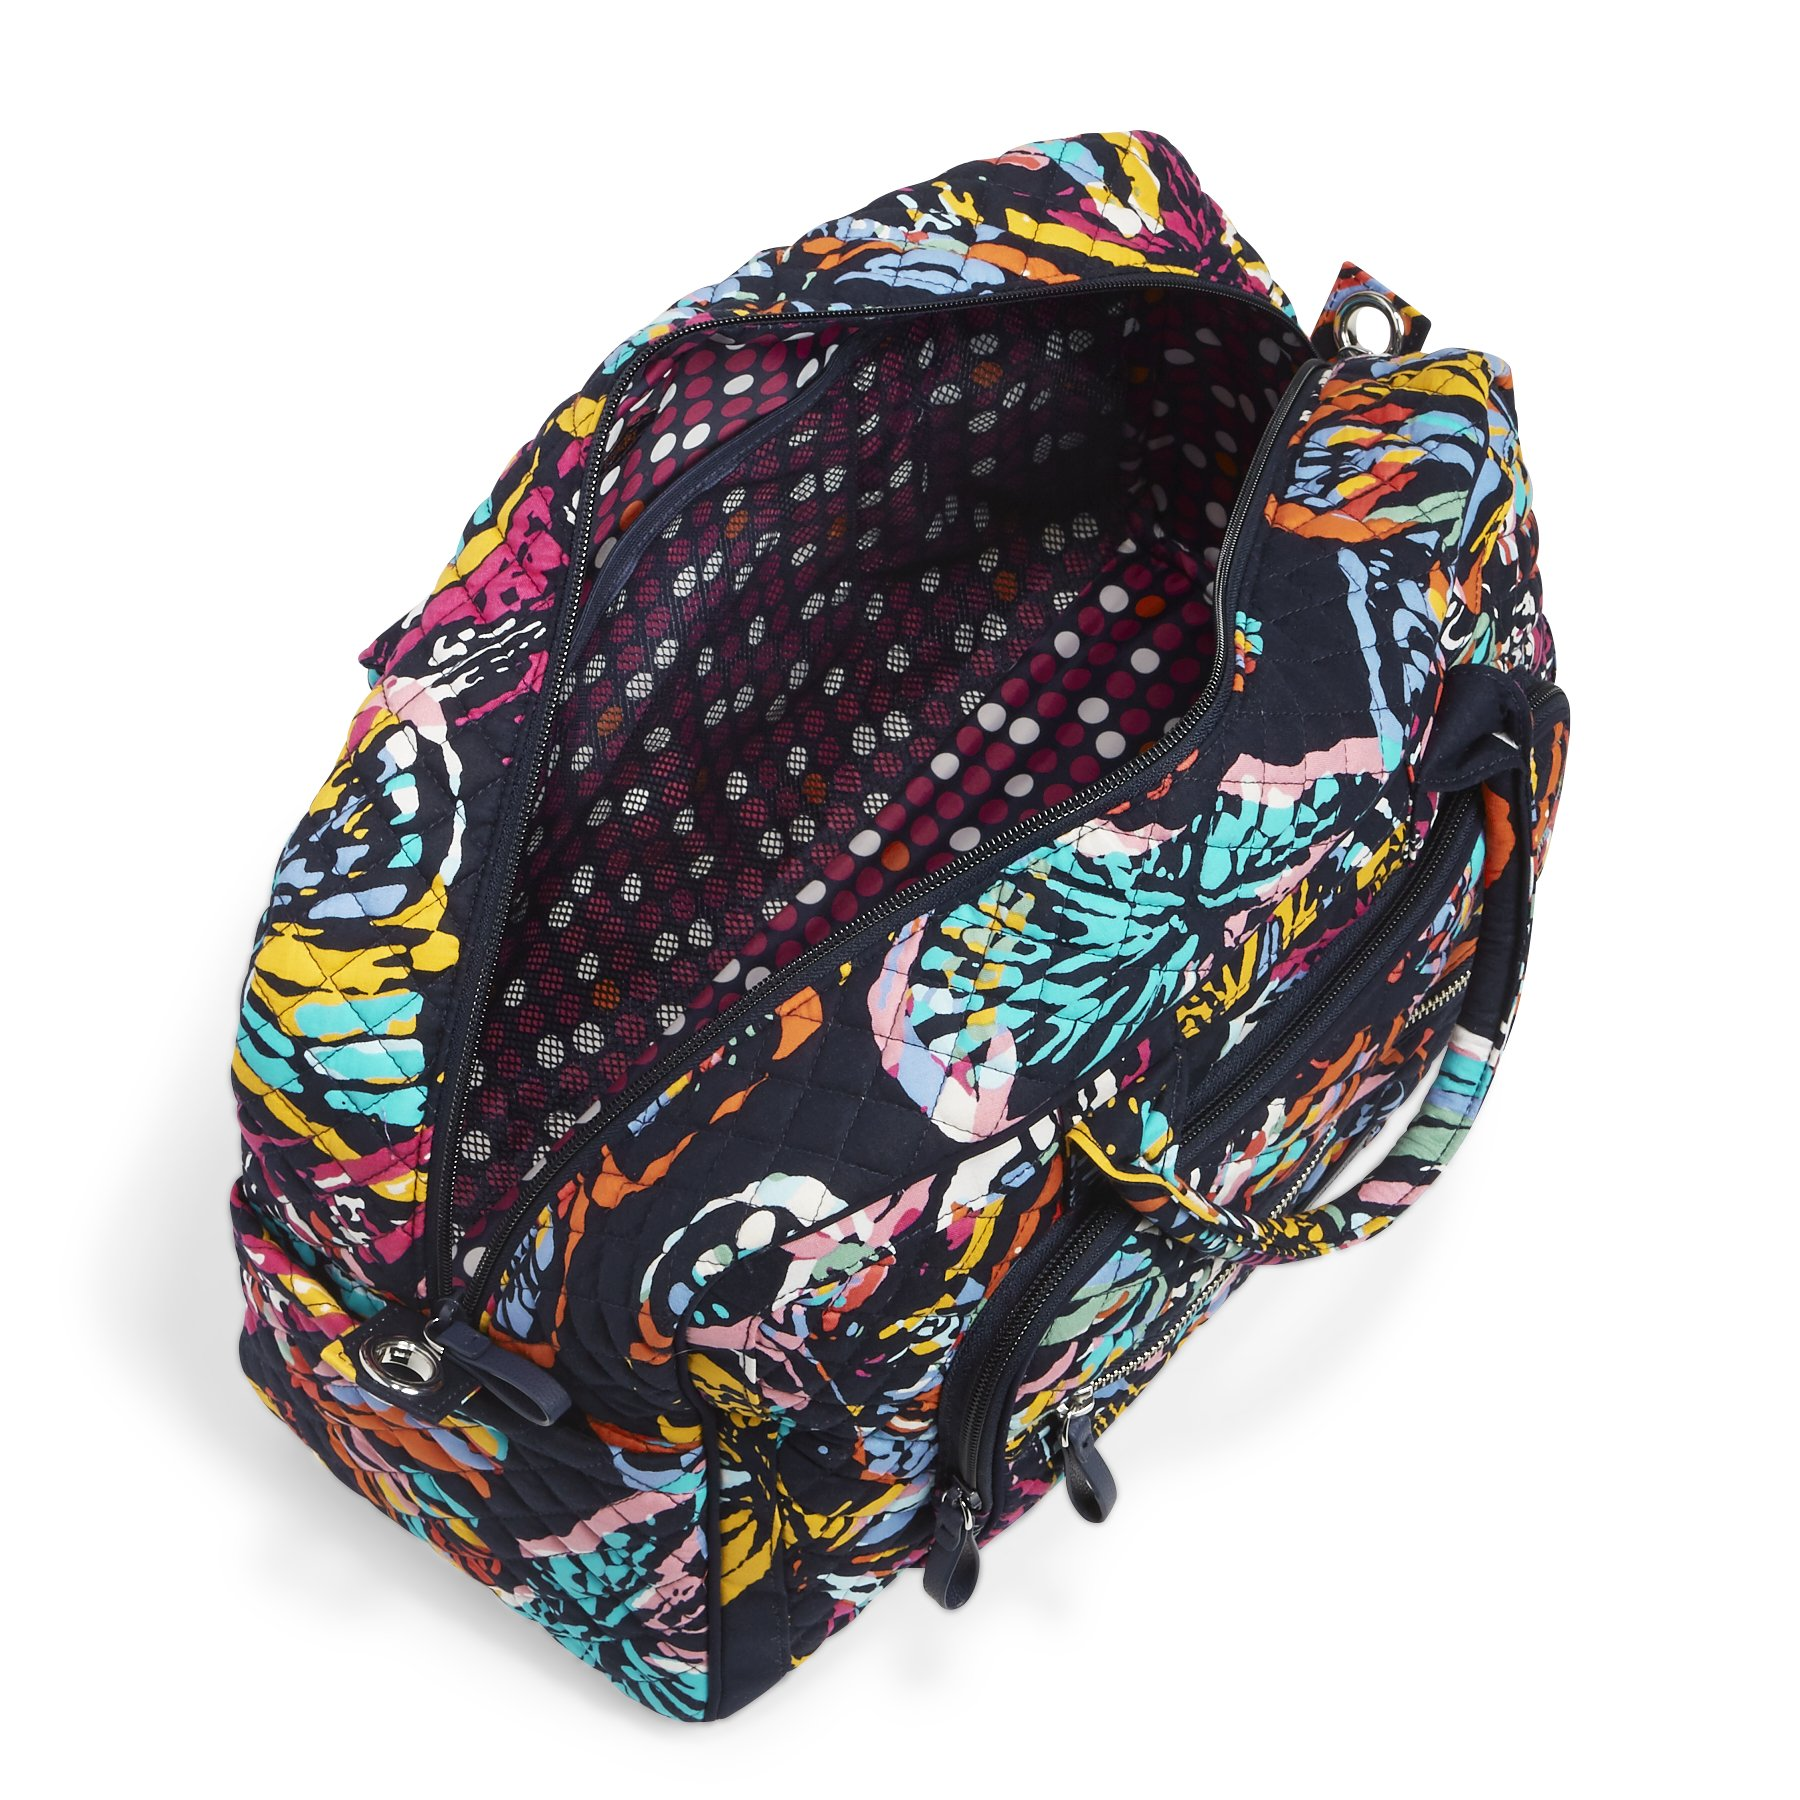 Vera Bradley Iconic Compact Weekender Travel Bag, Signature Cotton, Butterfly Flutter by Vera Bradley (Image #4)